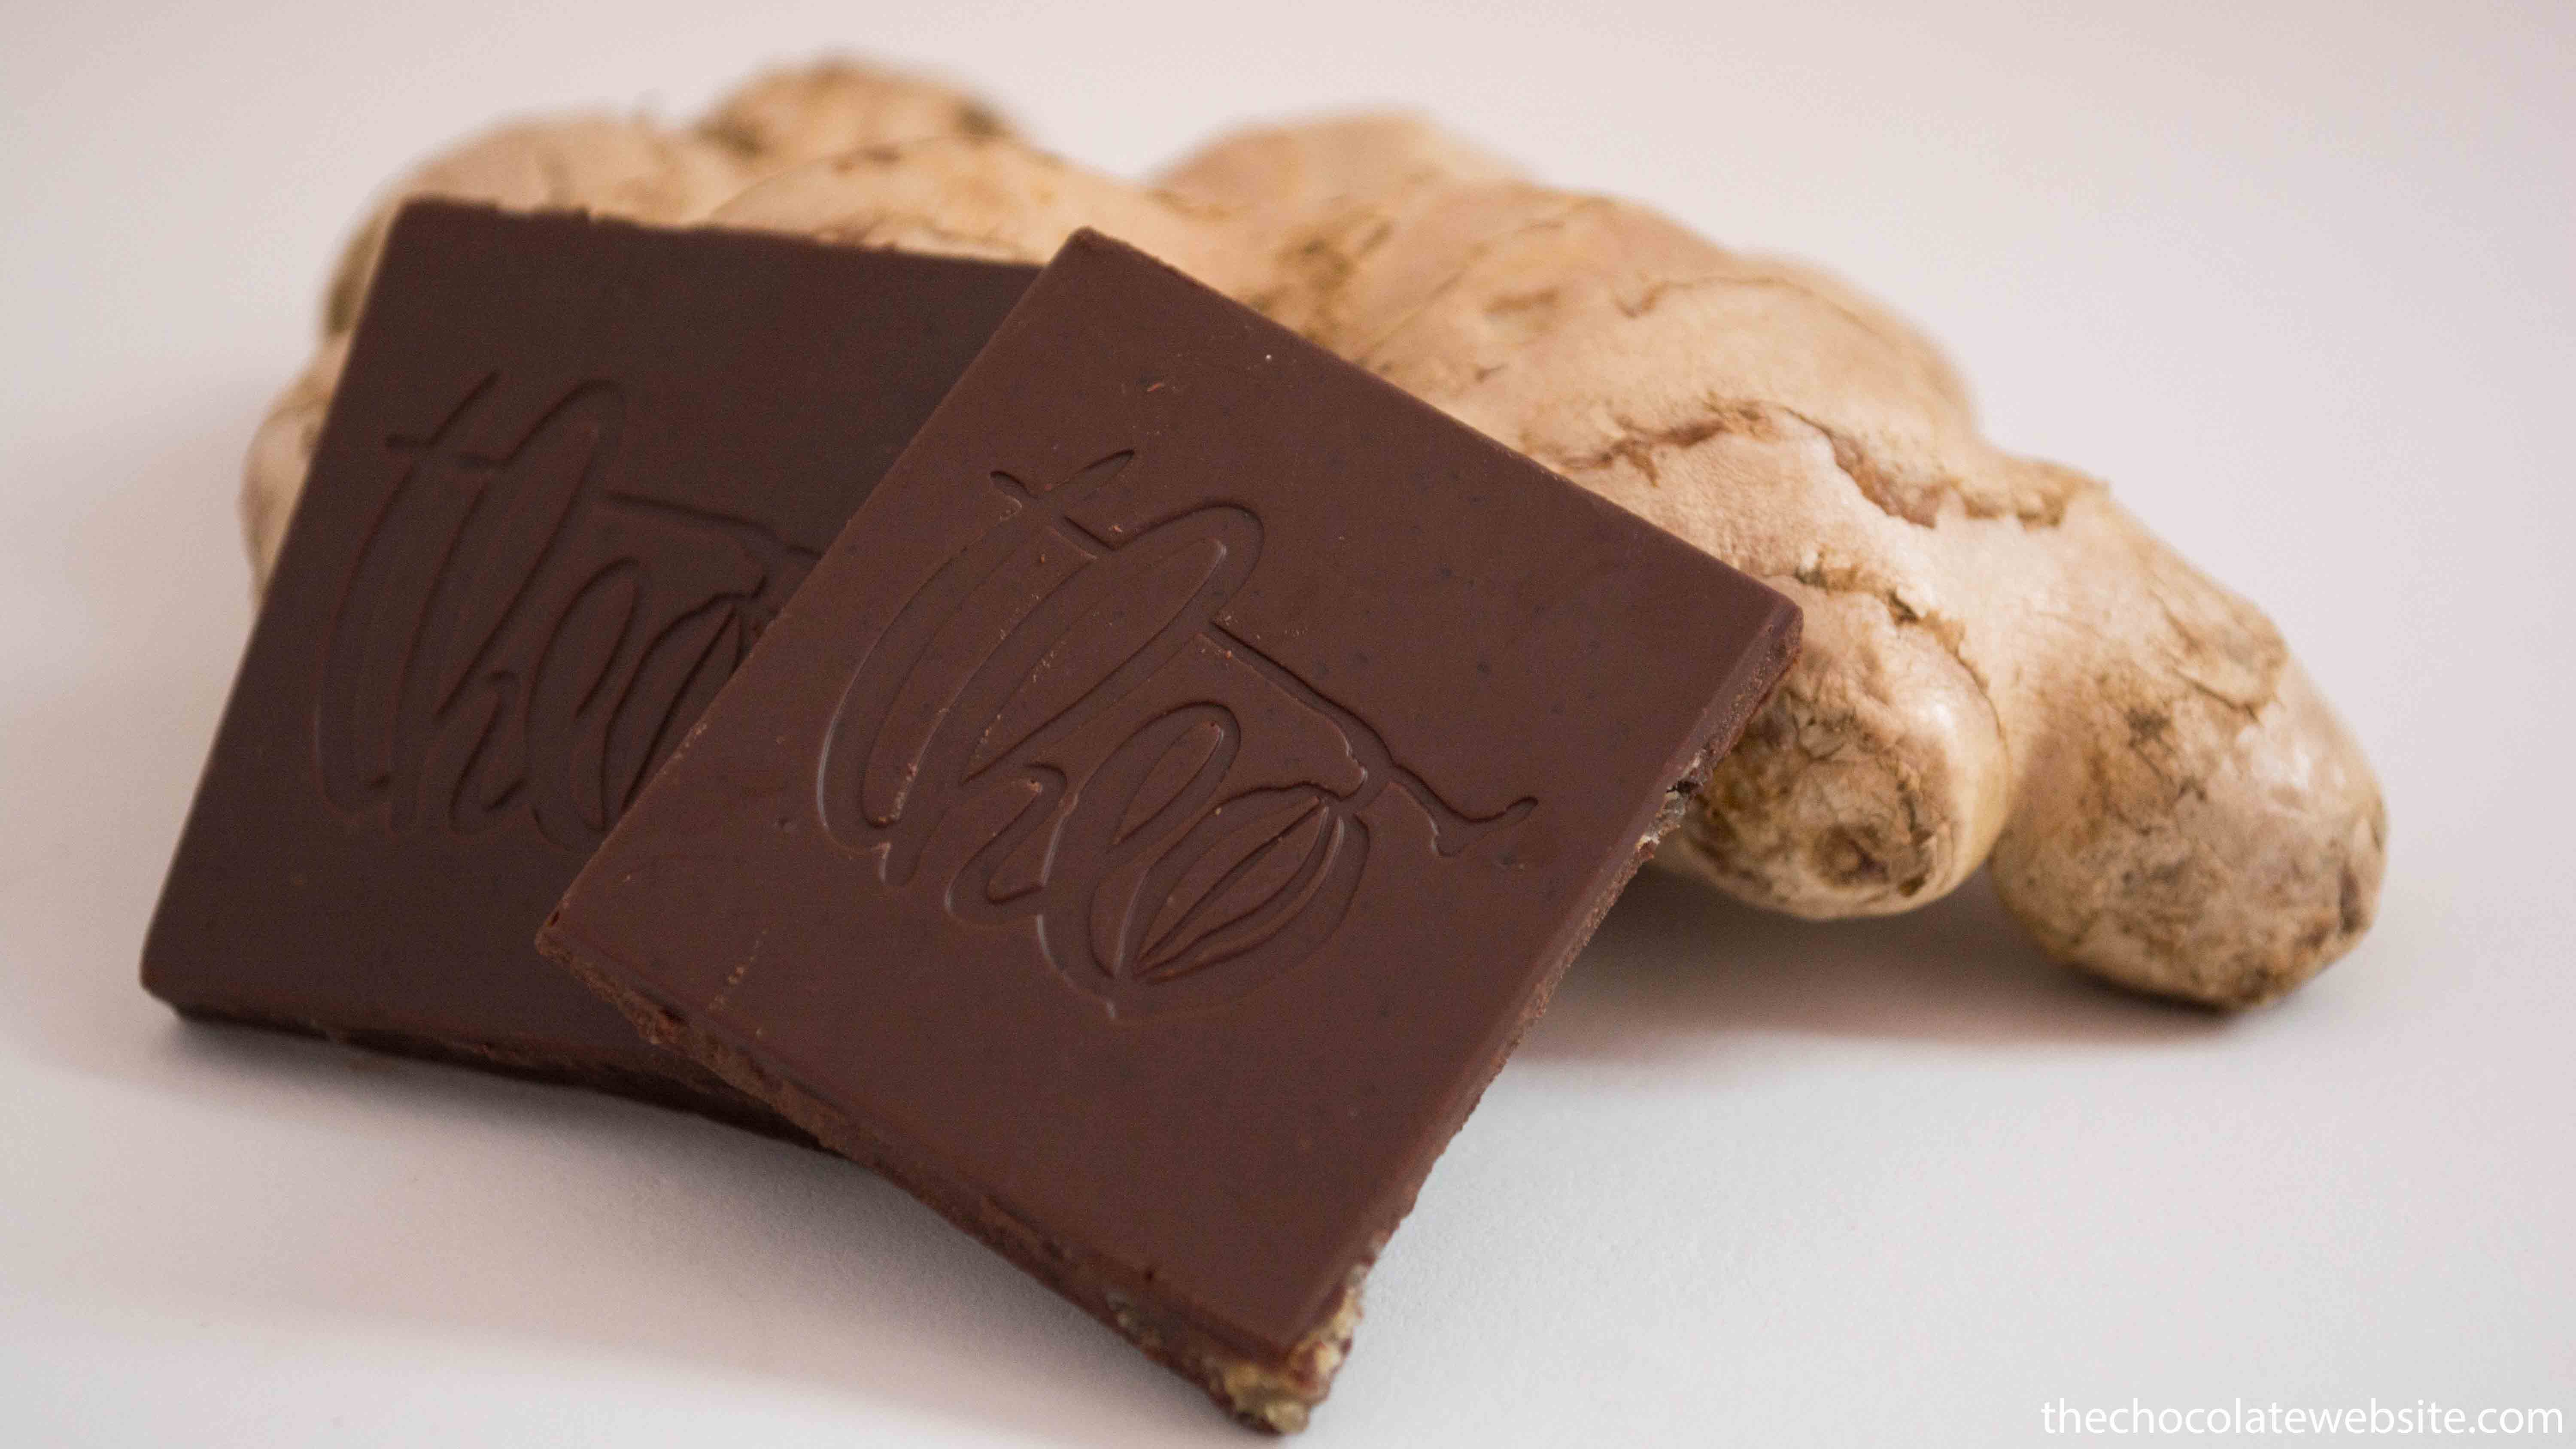 Theo Dark Chocolate with Ginger Unwrapped